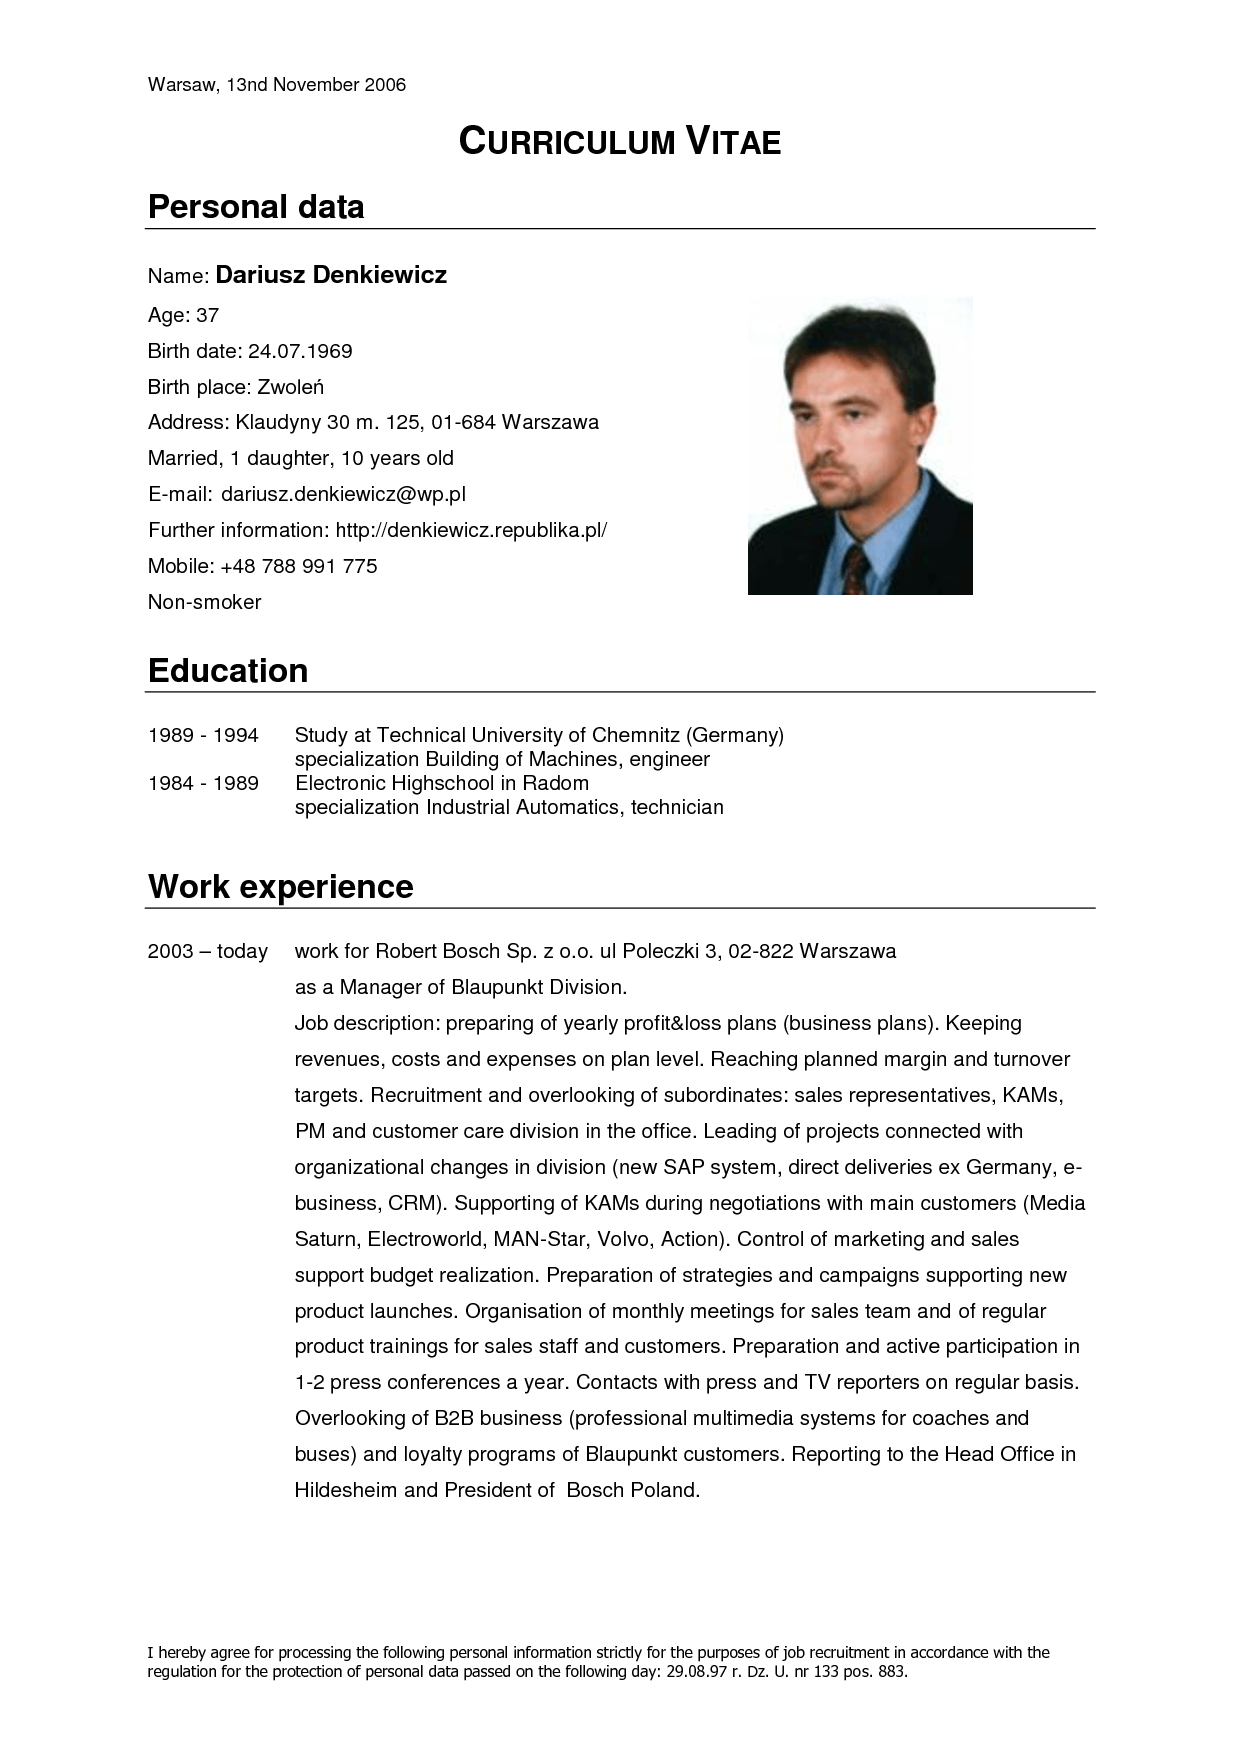 Sample Resume For Working Abroad Curriculum Vitae Resume Cv Computer And Auto Control